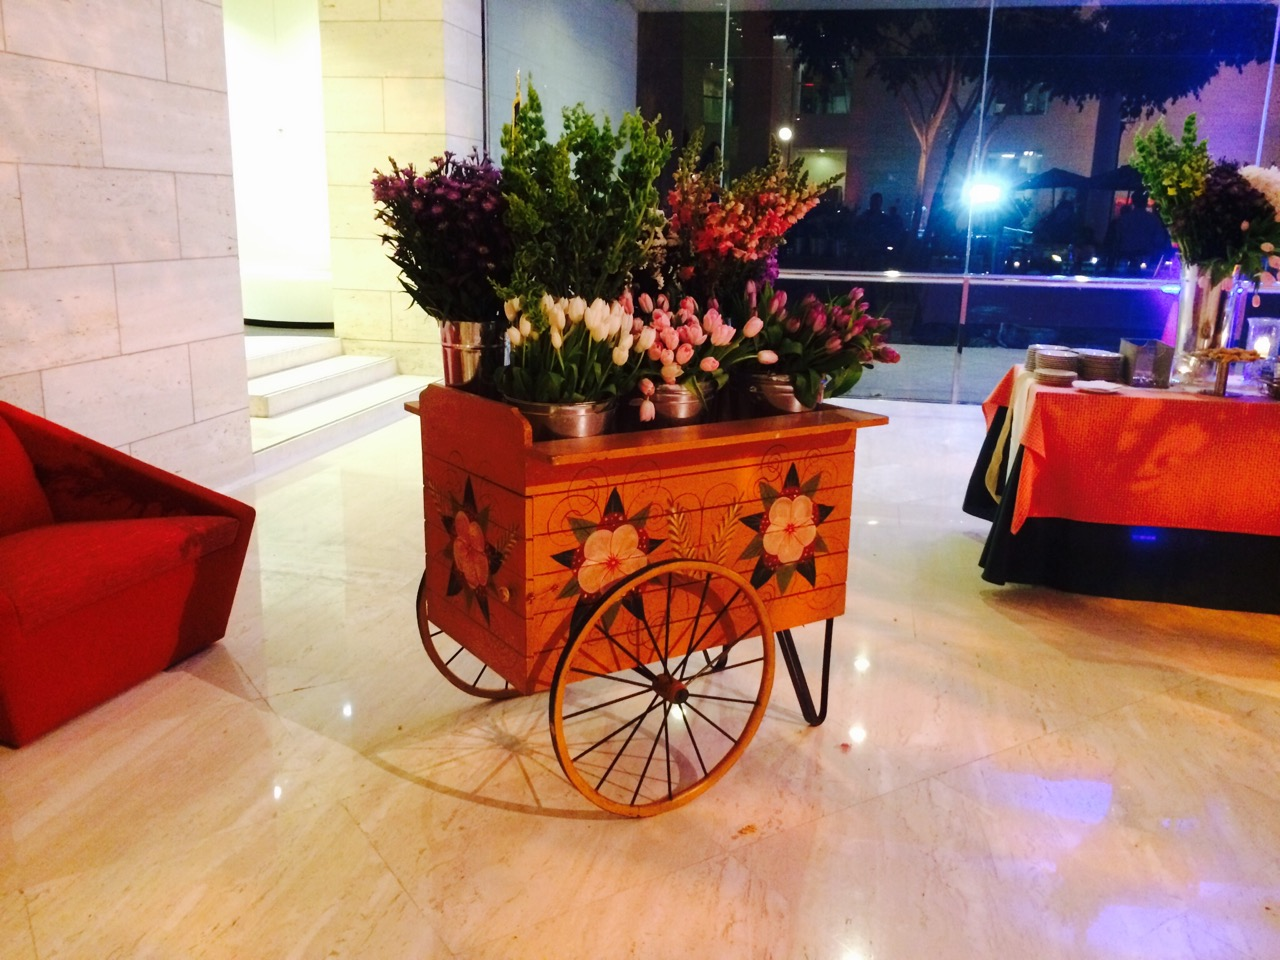 Flower+Cart+Prop+Rental+NJ+NYC+Eggsotic+Events+Custom+Props+and+Rental+Props+for+Events++-+2.jpg